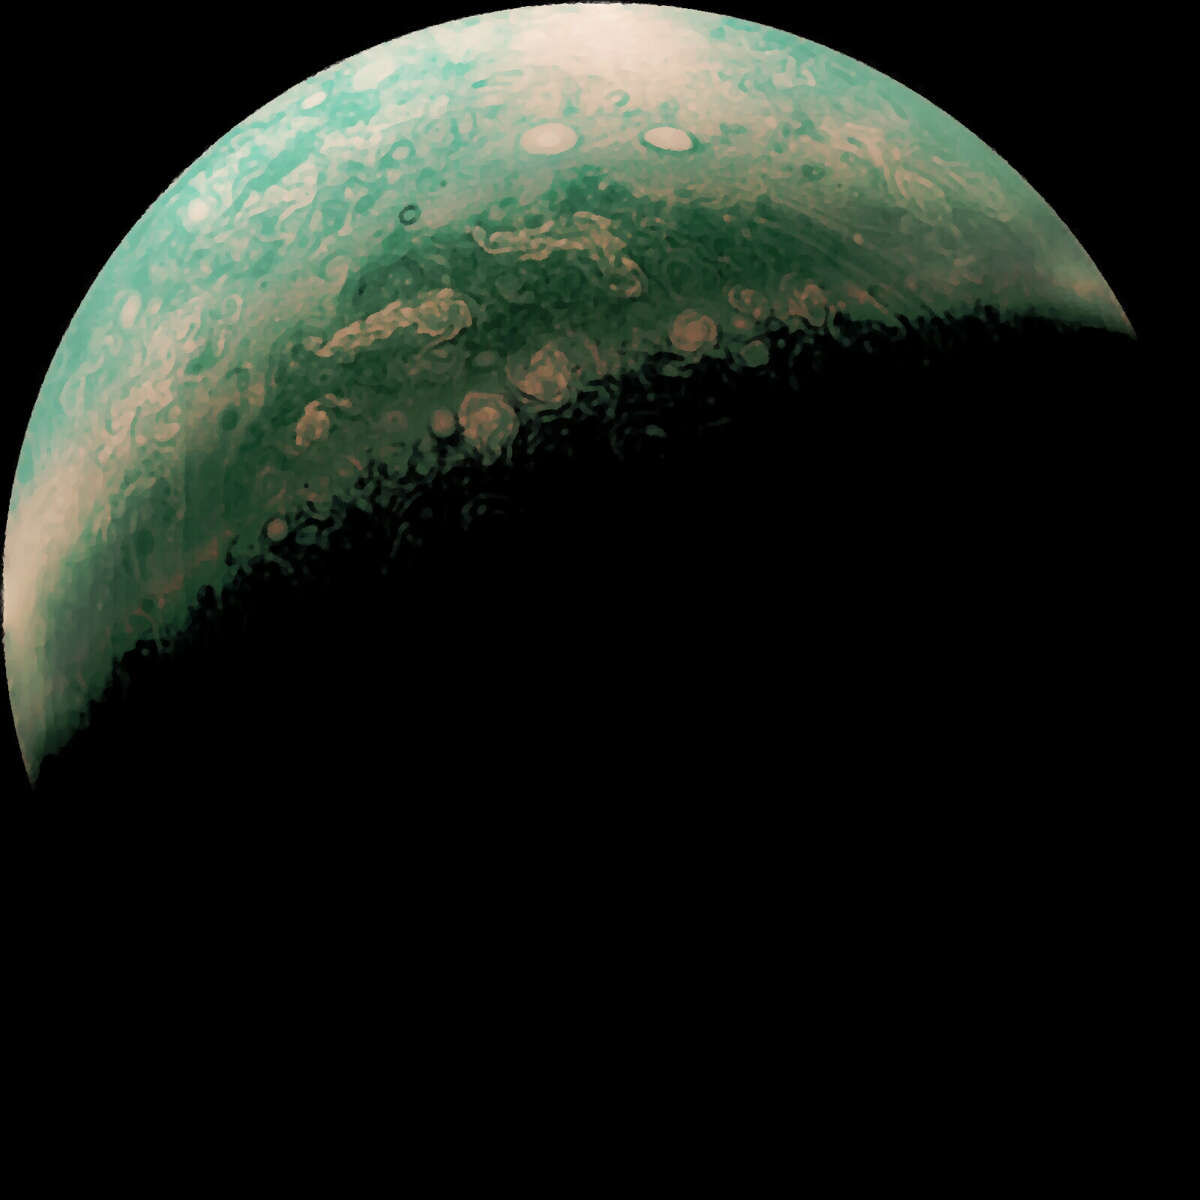 Another person processed the same raw image to show more green-colored details.